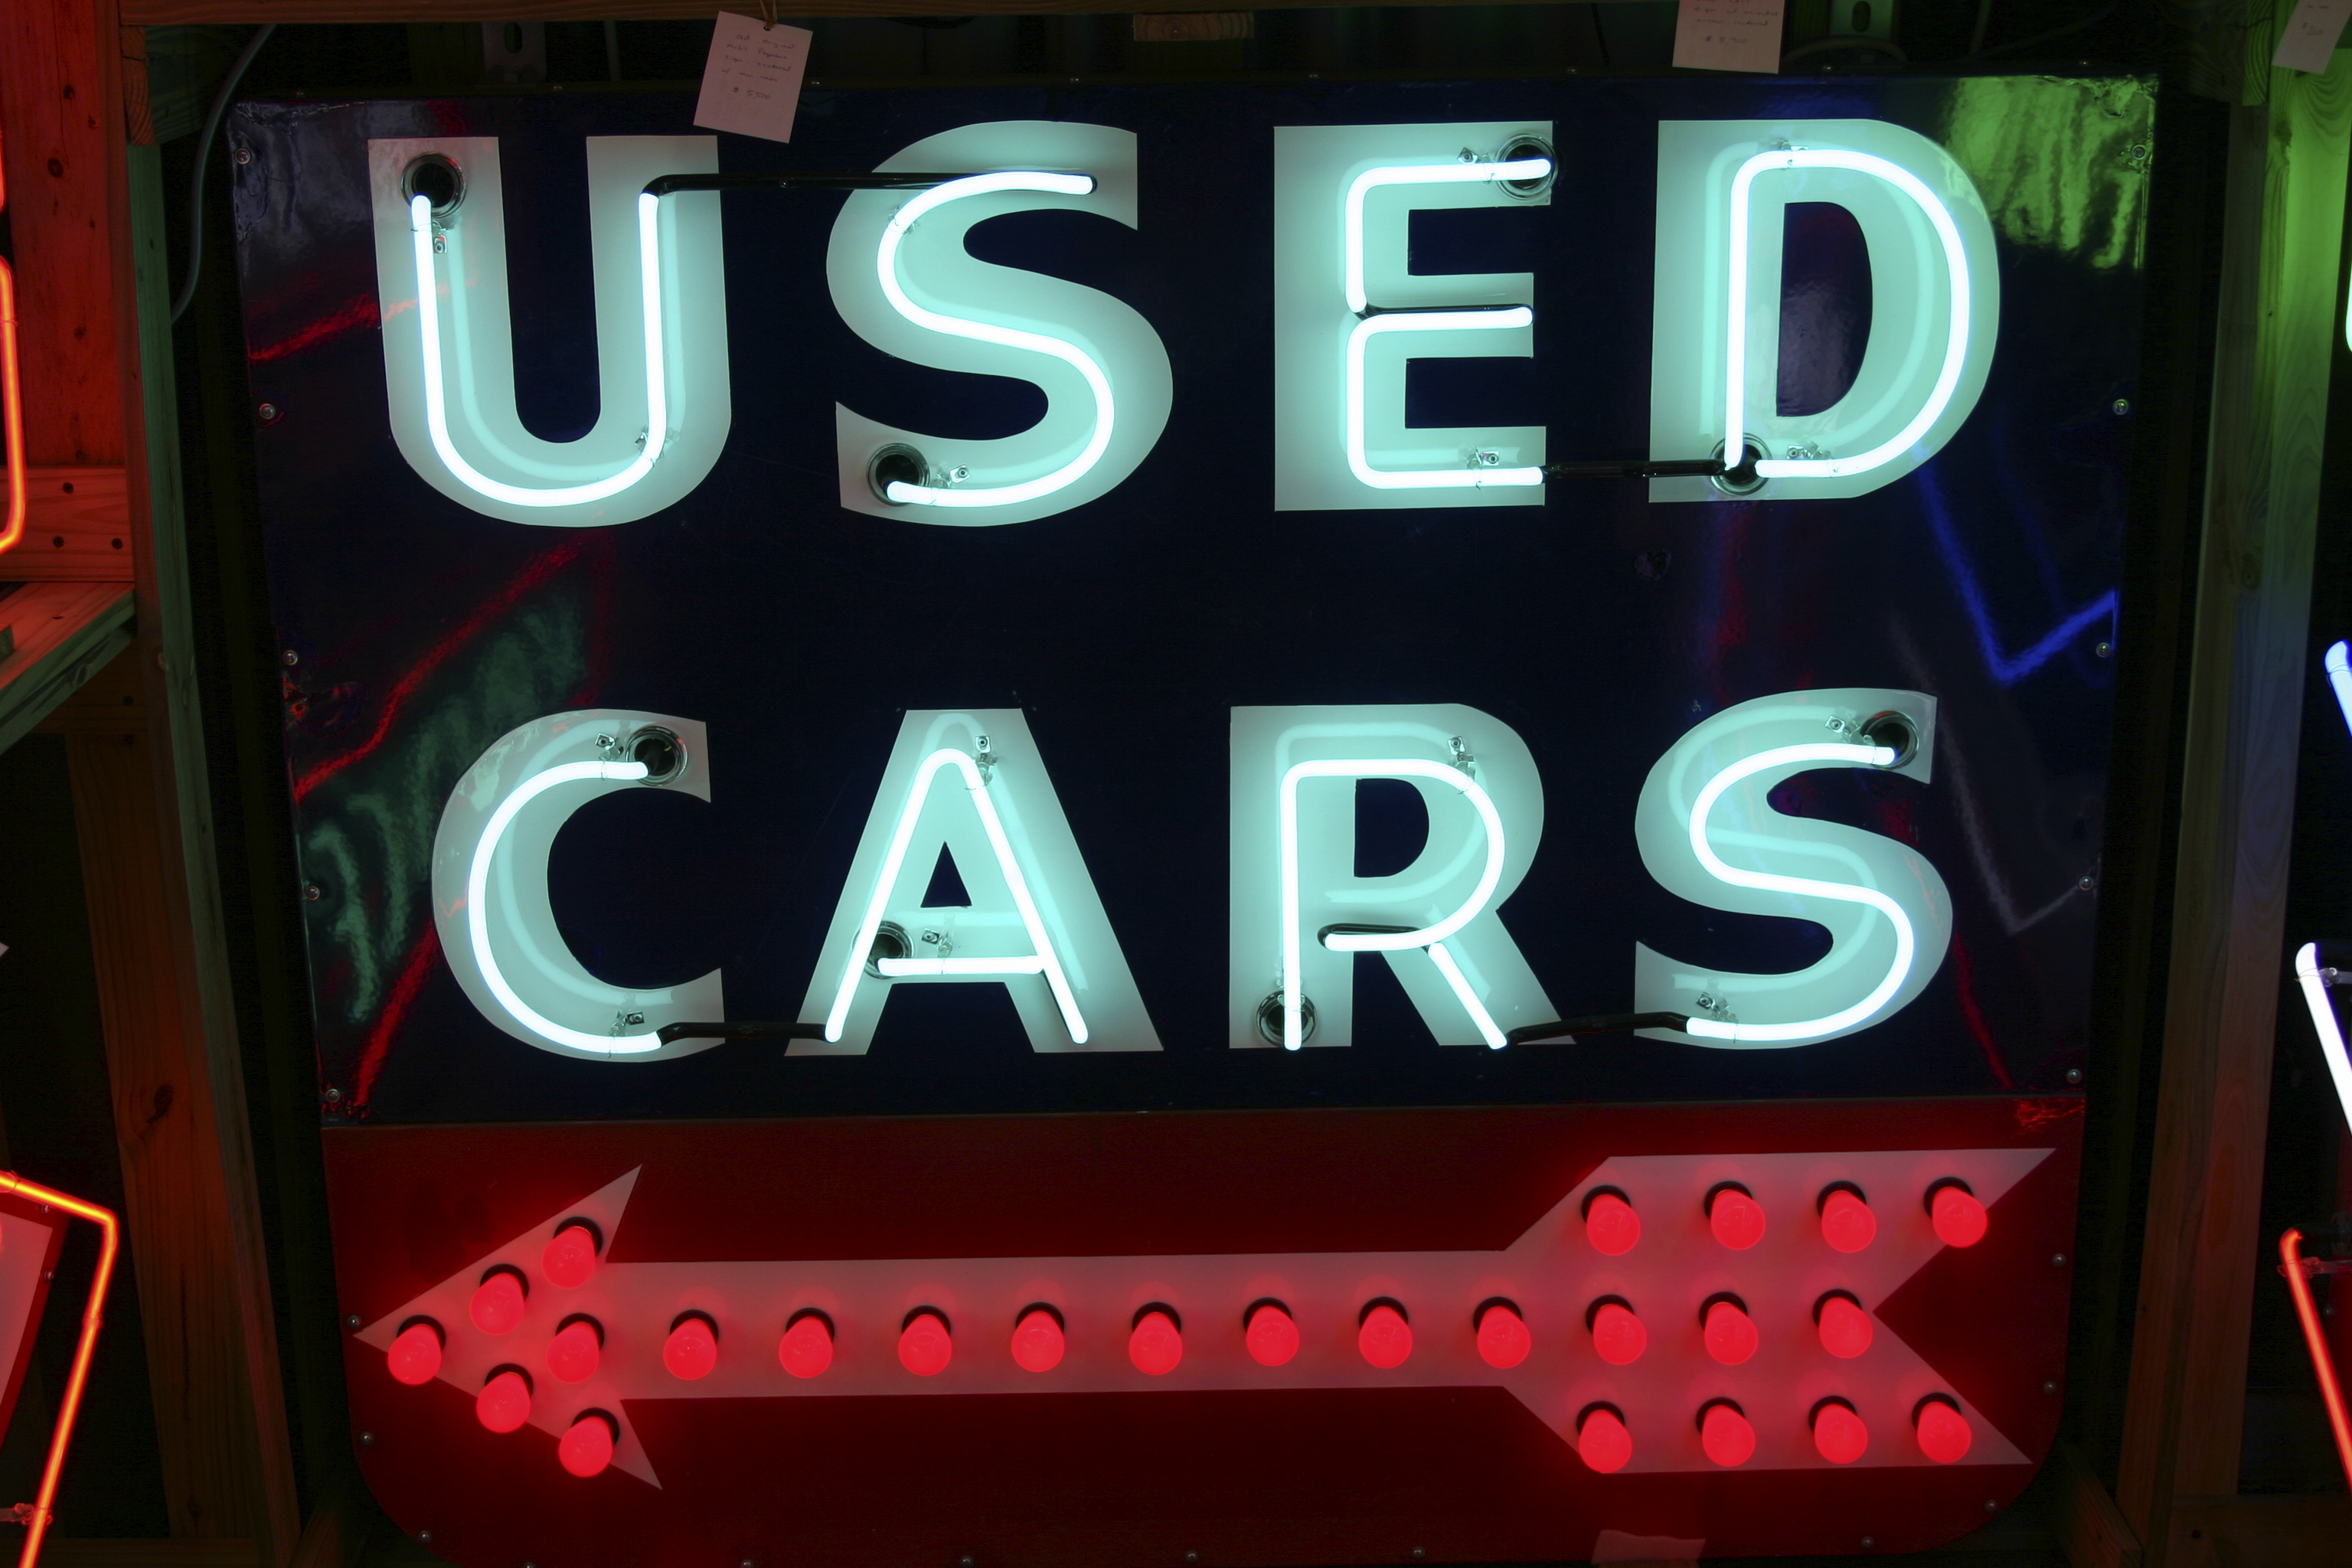 buying a certified used car 5 things you need to know cbs news. Black Bedroom Furniture Sets. Home Design Ideas